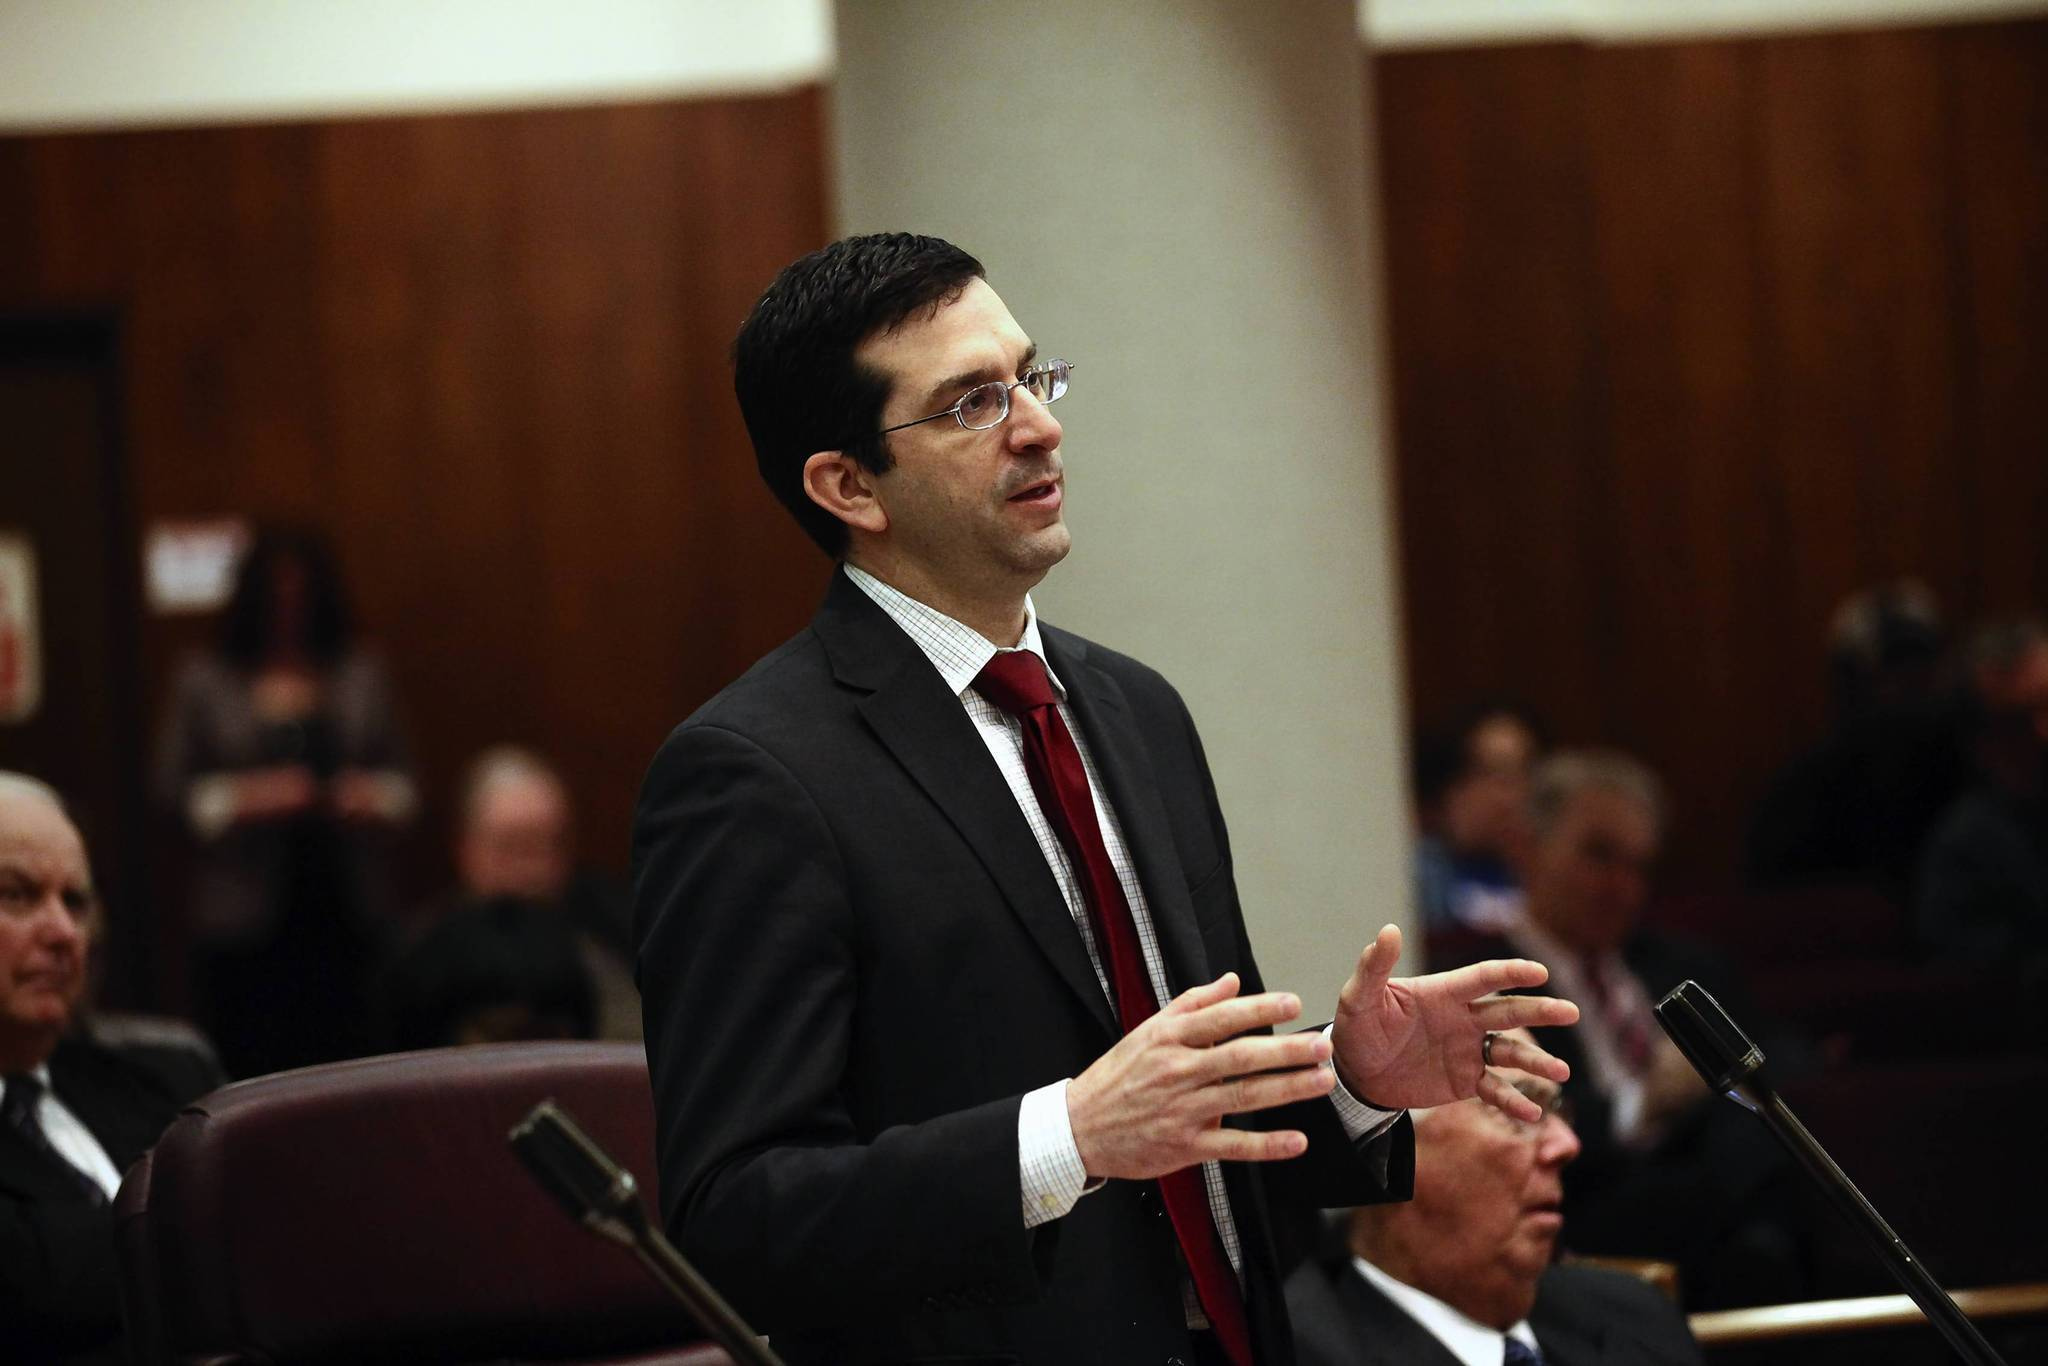 """Ald. Scott Waguespack, 32nd, said he wasn't aware of everything an ordinance he proposed would allow until a Tribune reporter brought it to his attention. """"I probably should have paid a lot closer attention to it, but I was distracted by other stuff, like billion-dollar bond deals,"""" he said."""